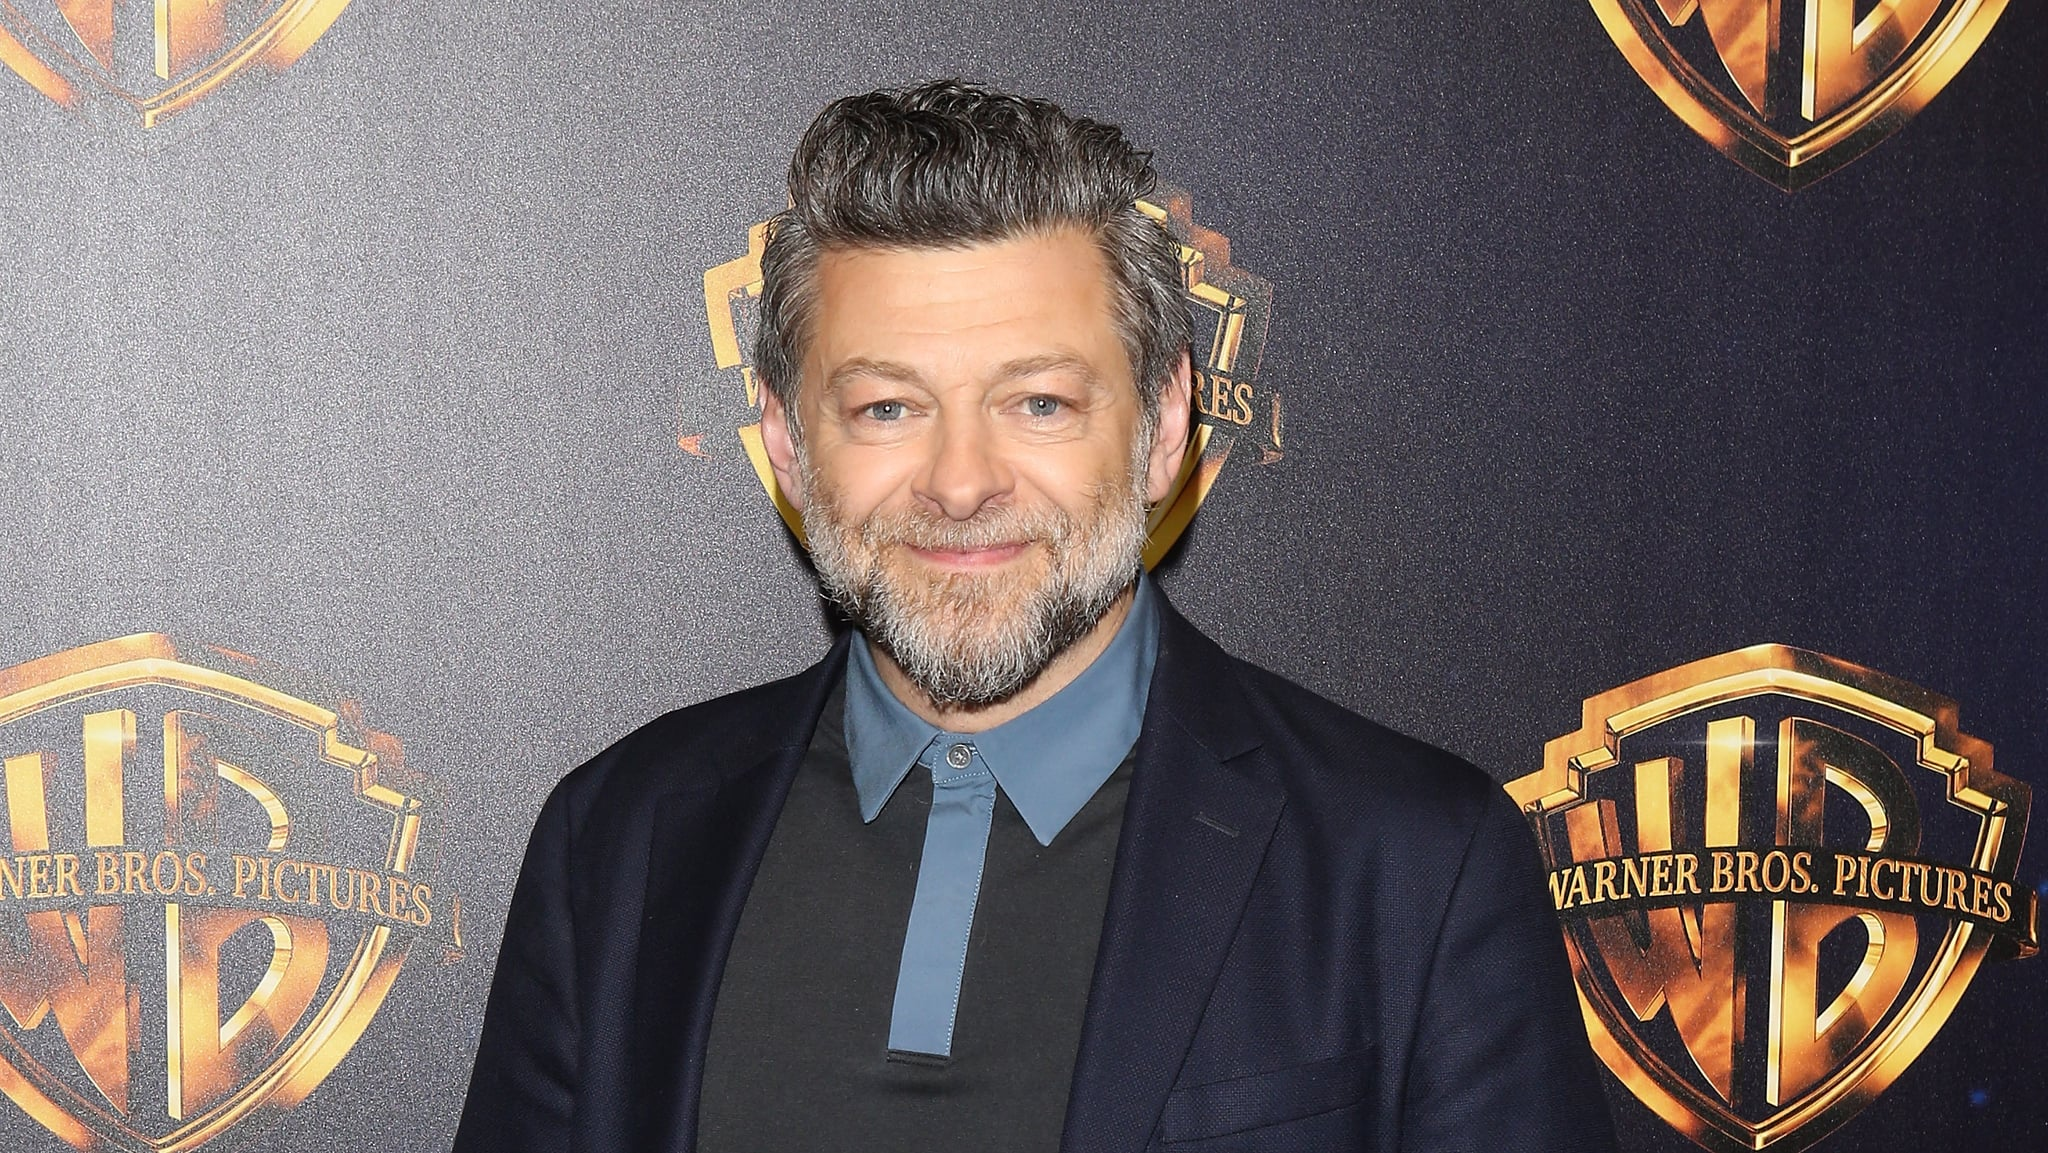 LAS VEGAS, NV - APRIL 24:  Andy Serkis attends the 2018 CinemaCon - Warner Bros. Pictures